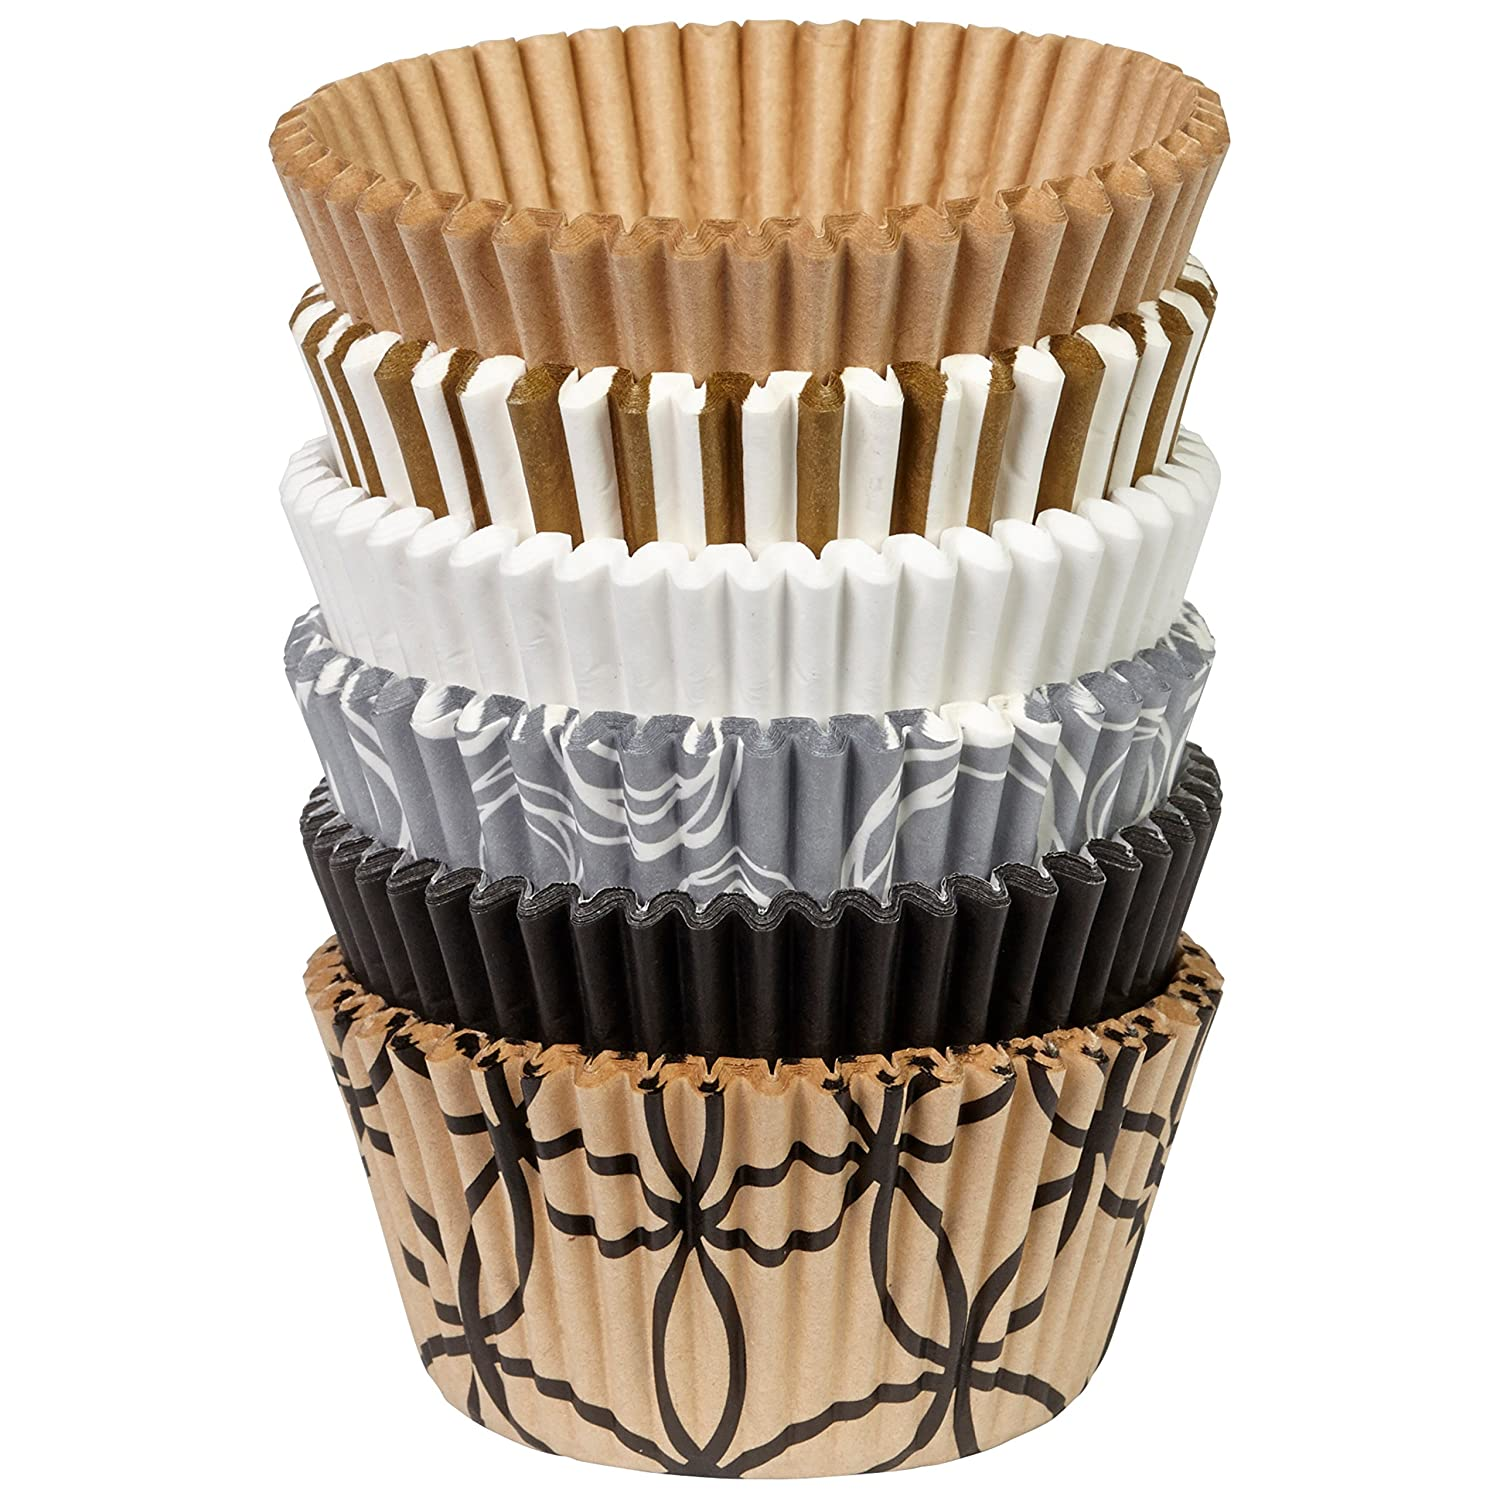 Elegance Cupcake Liners, pack of 150 Decora 415-2872